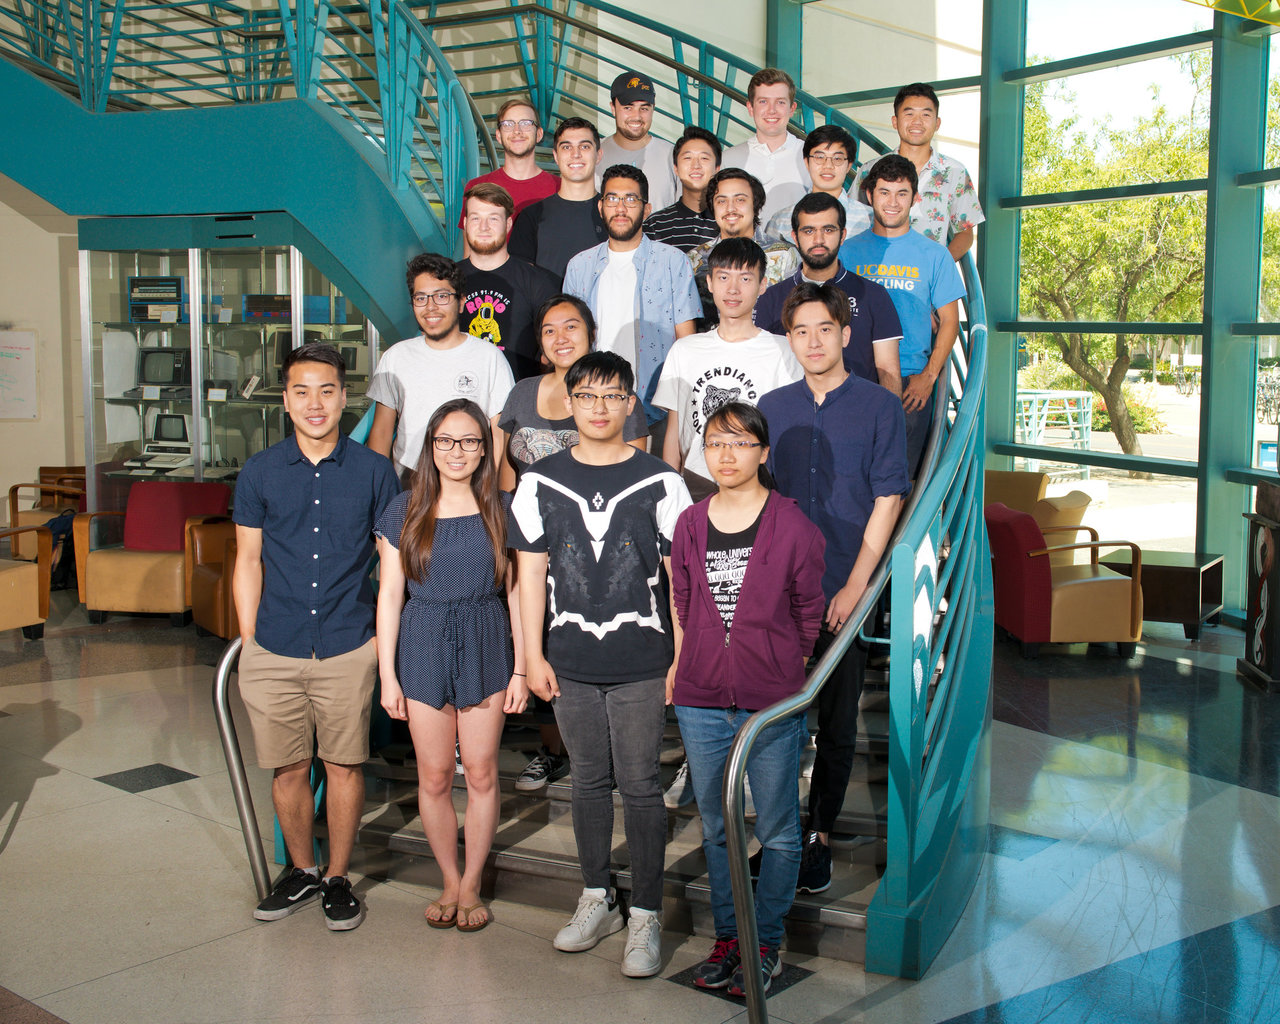 uc davis materials science engineering senior portrait 2018